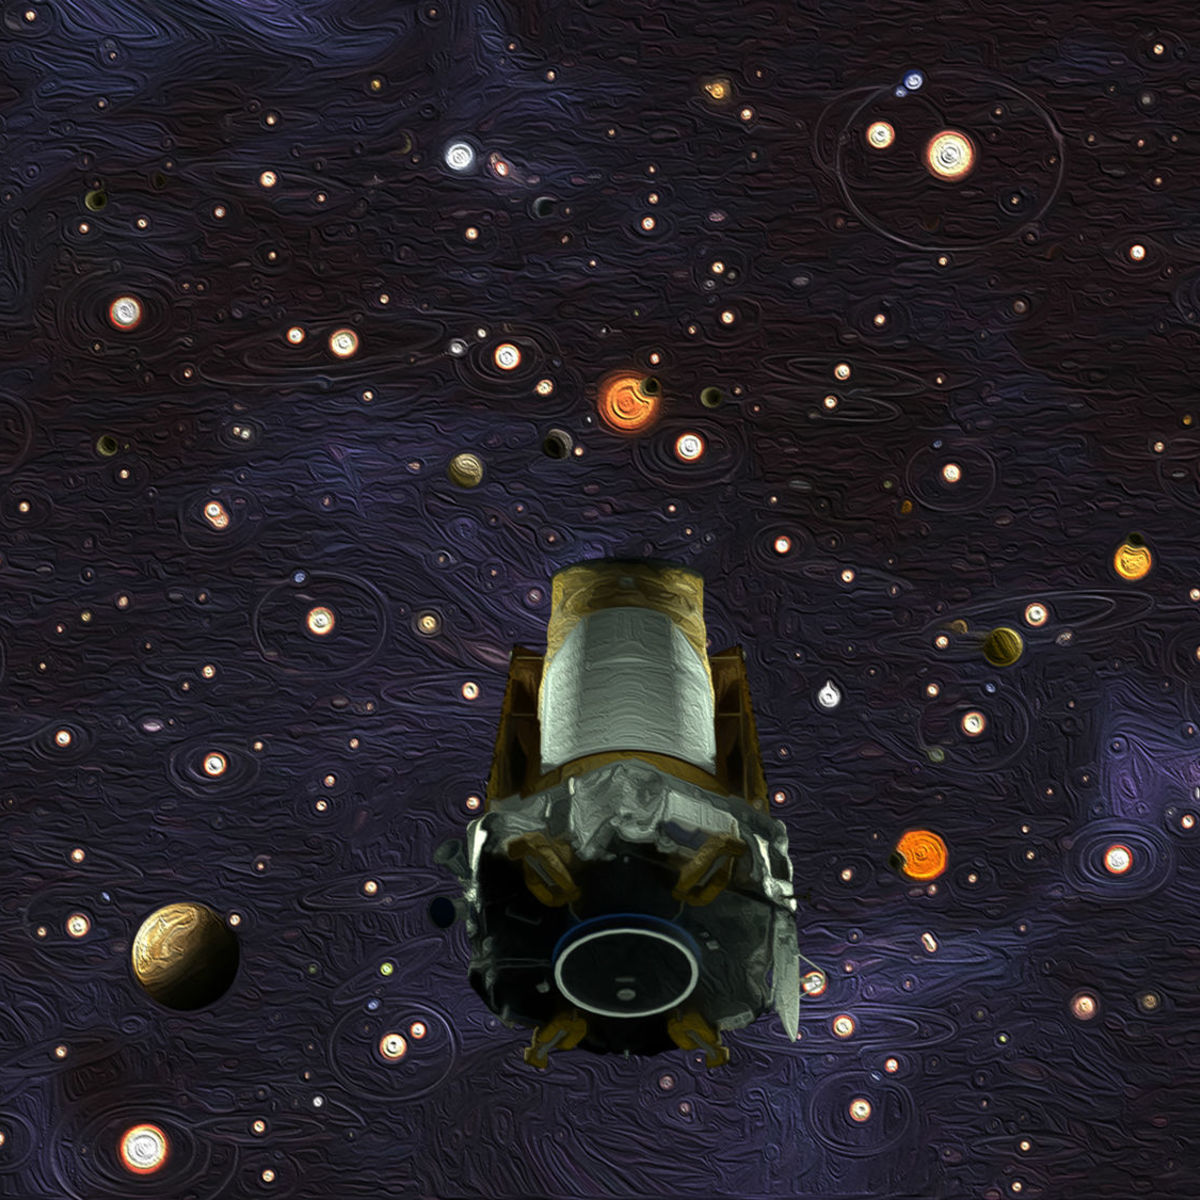 The Kepler mission has ended